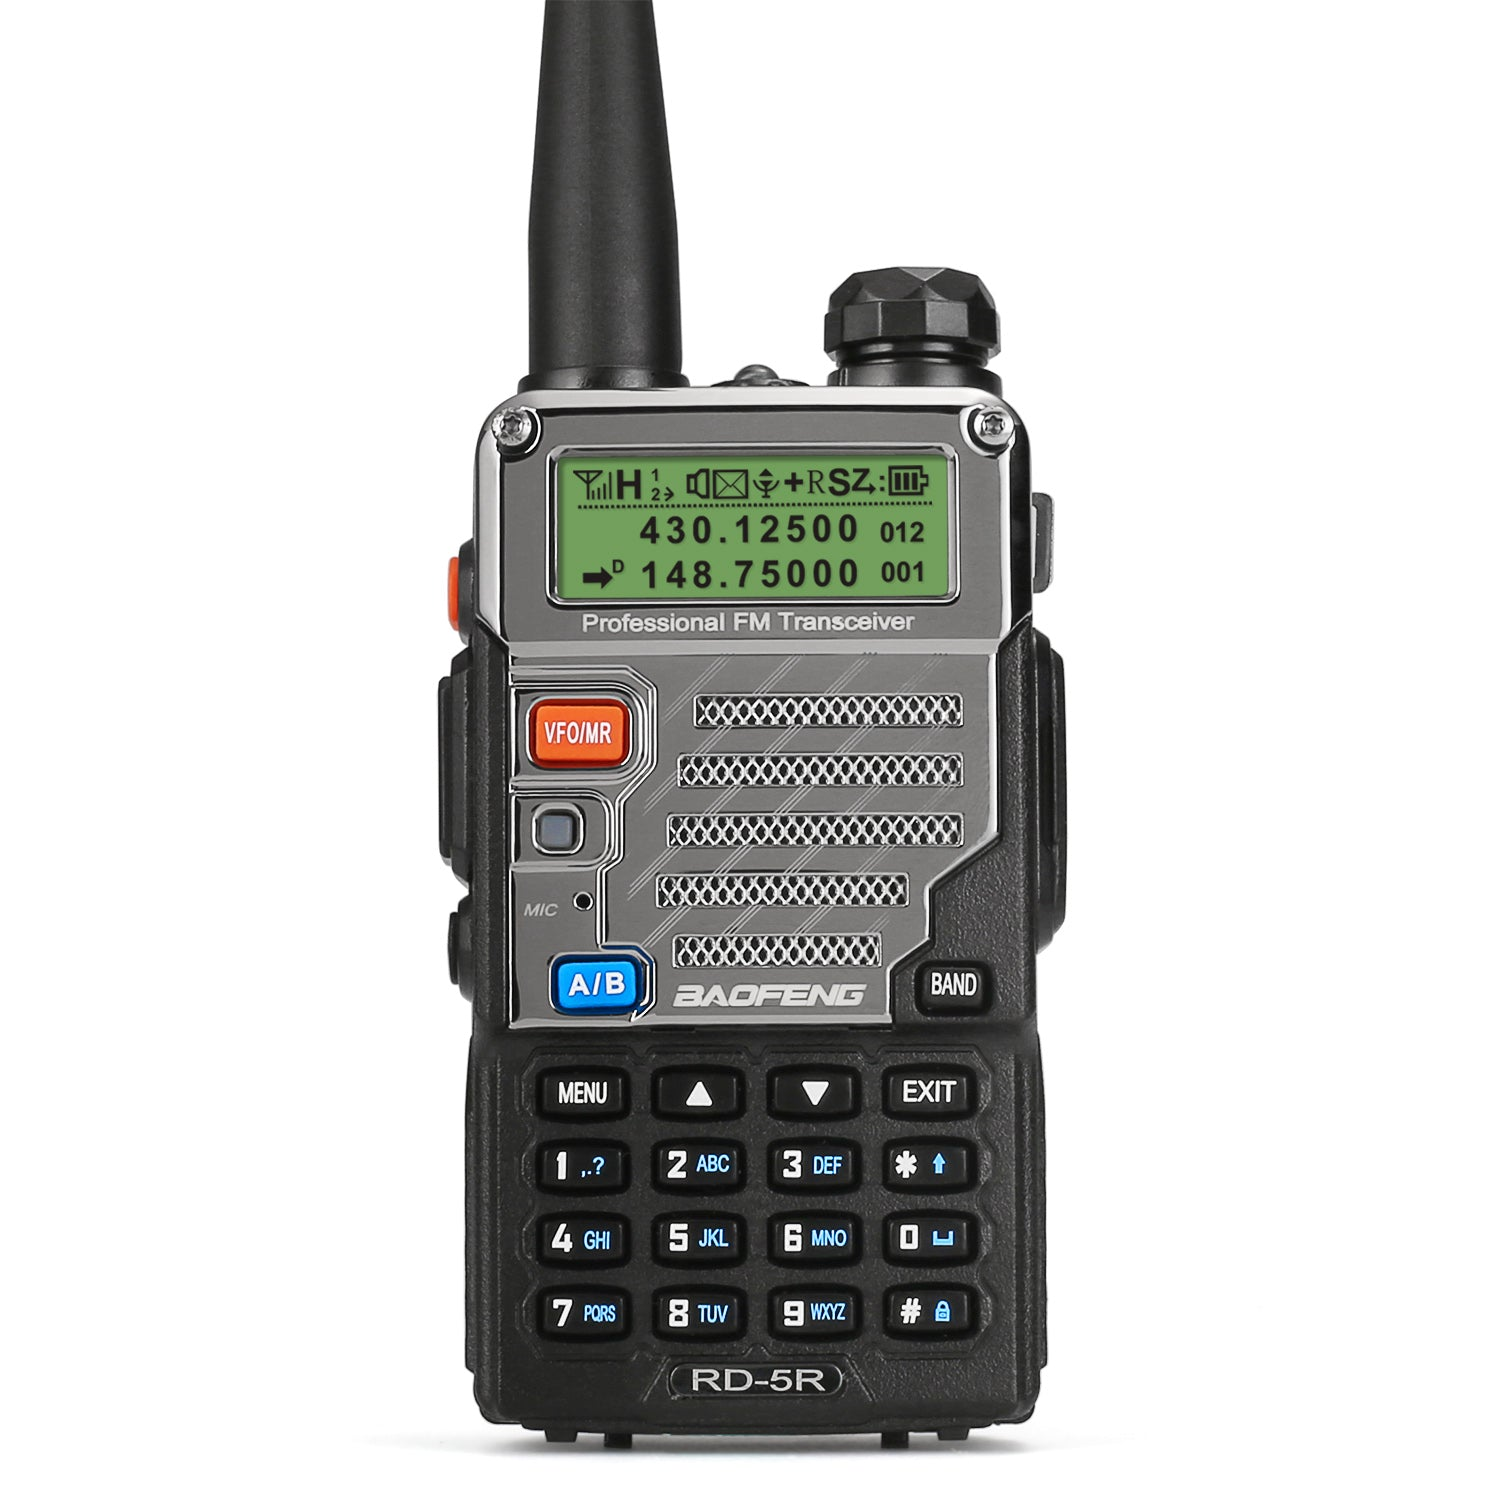 Radioddity x Baofeng RD-5R DMR Ham Amateur Two Way Radio [Code: RD5R-SALE]